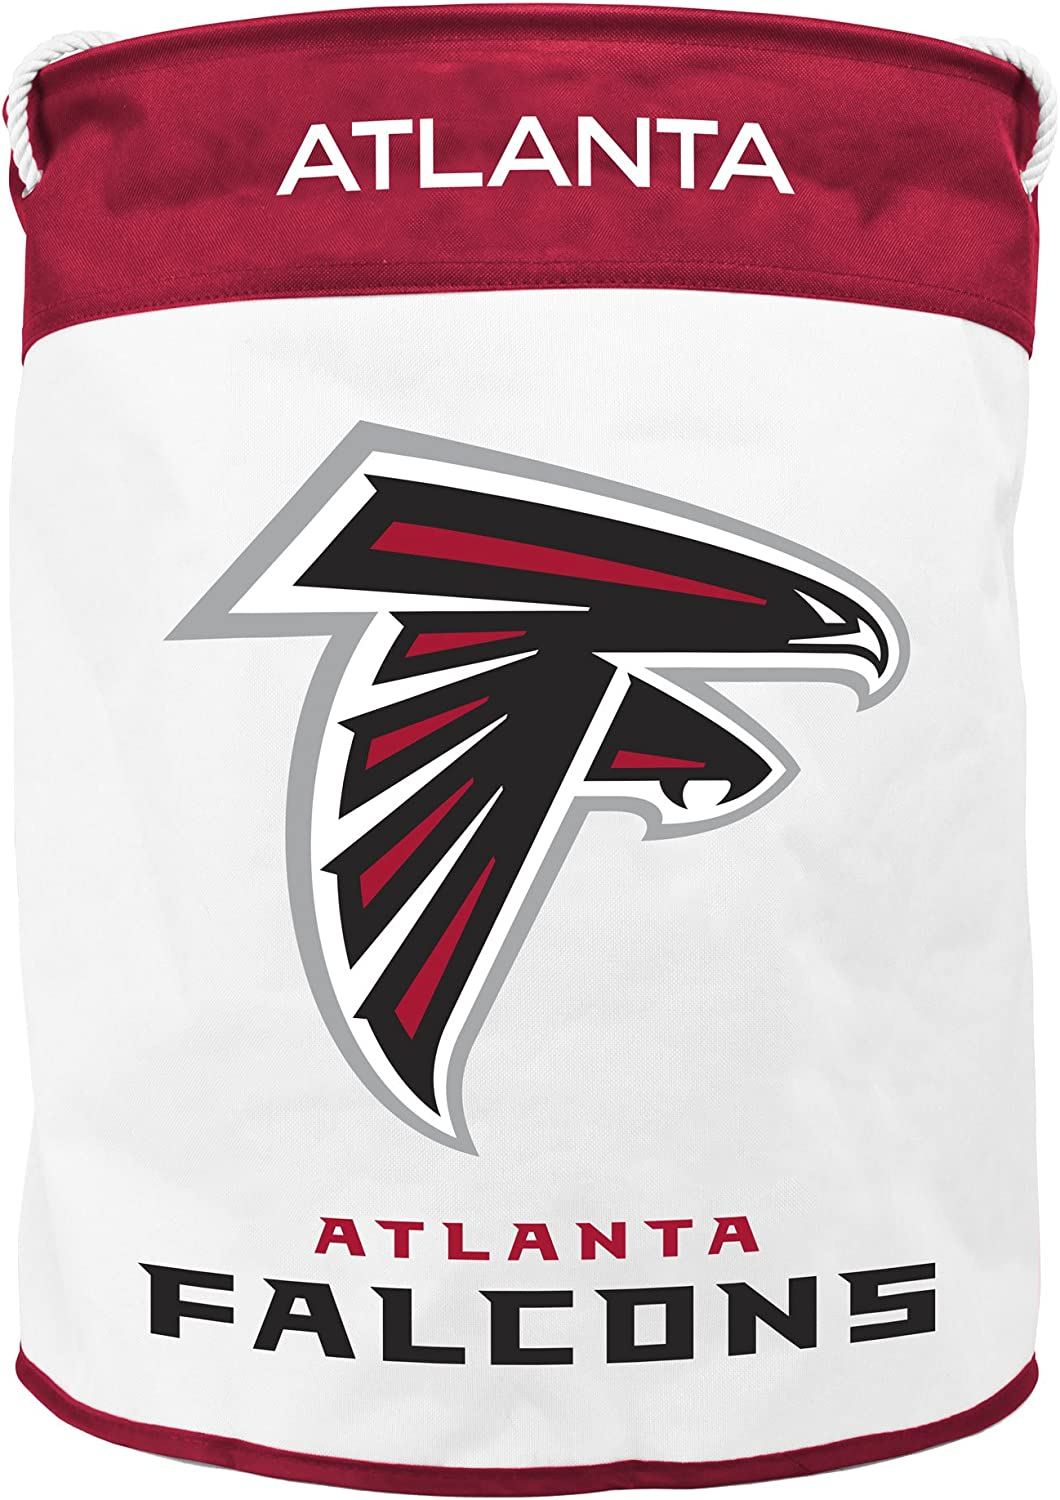 NFL Atlanta Falcons Canvas Laundry Basket with Braided Rope Handles